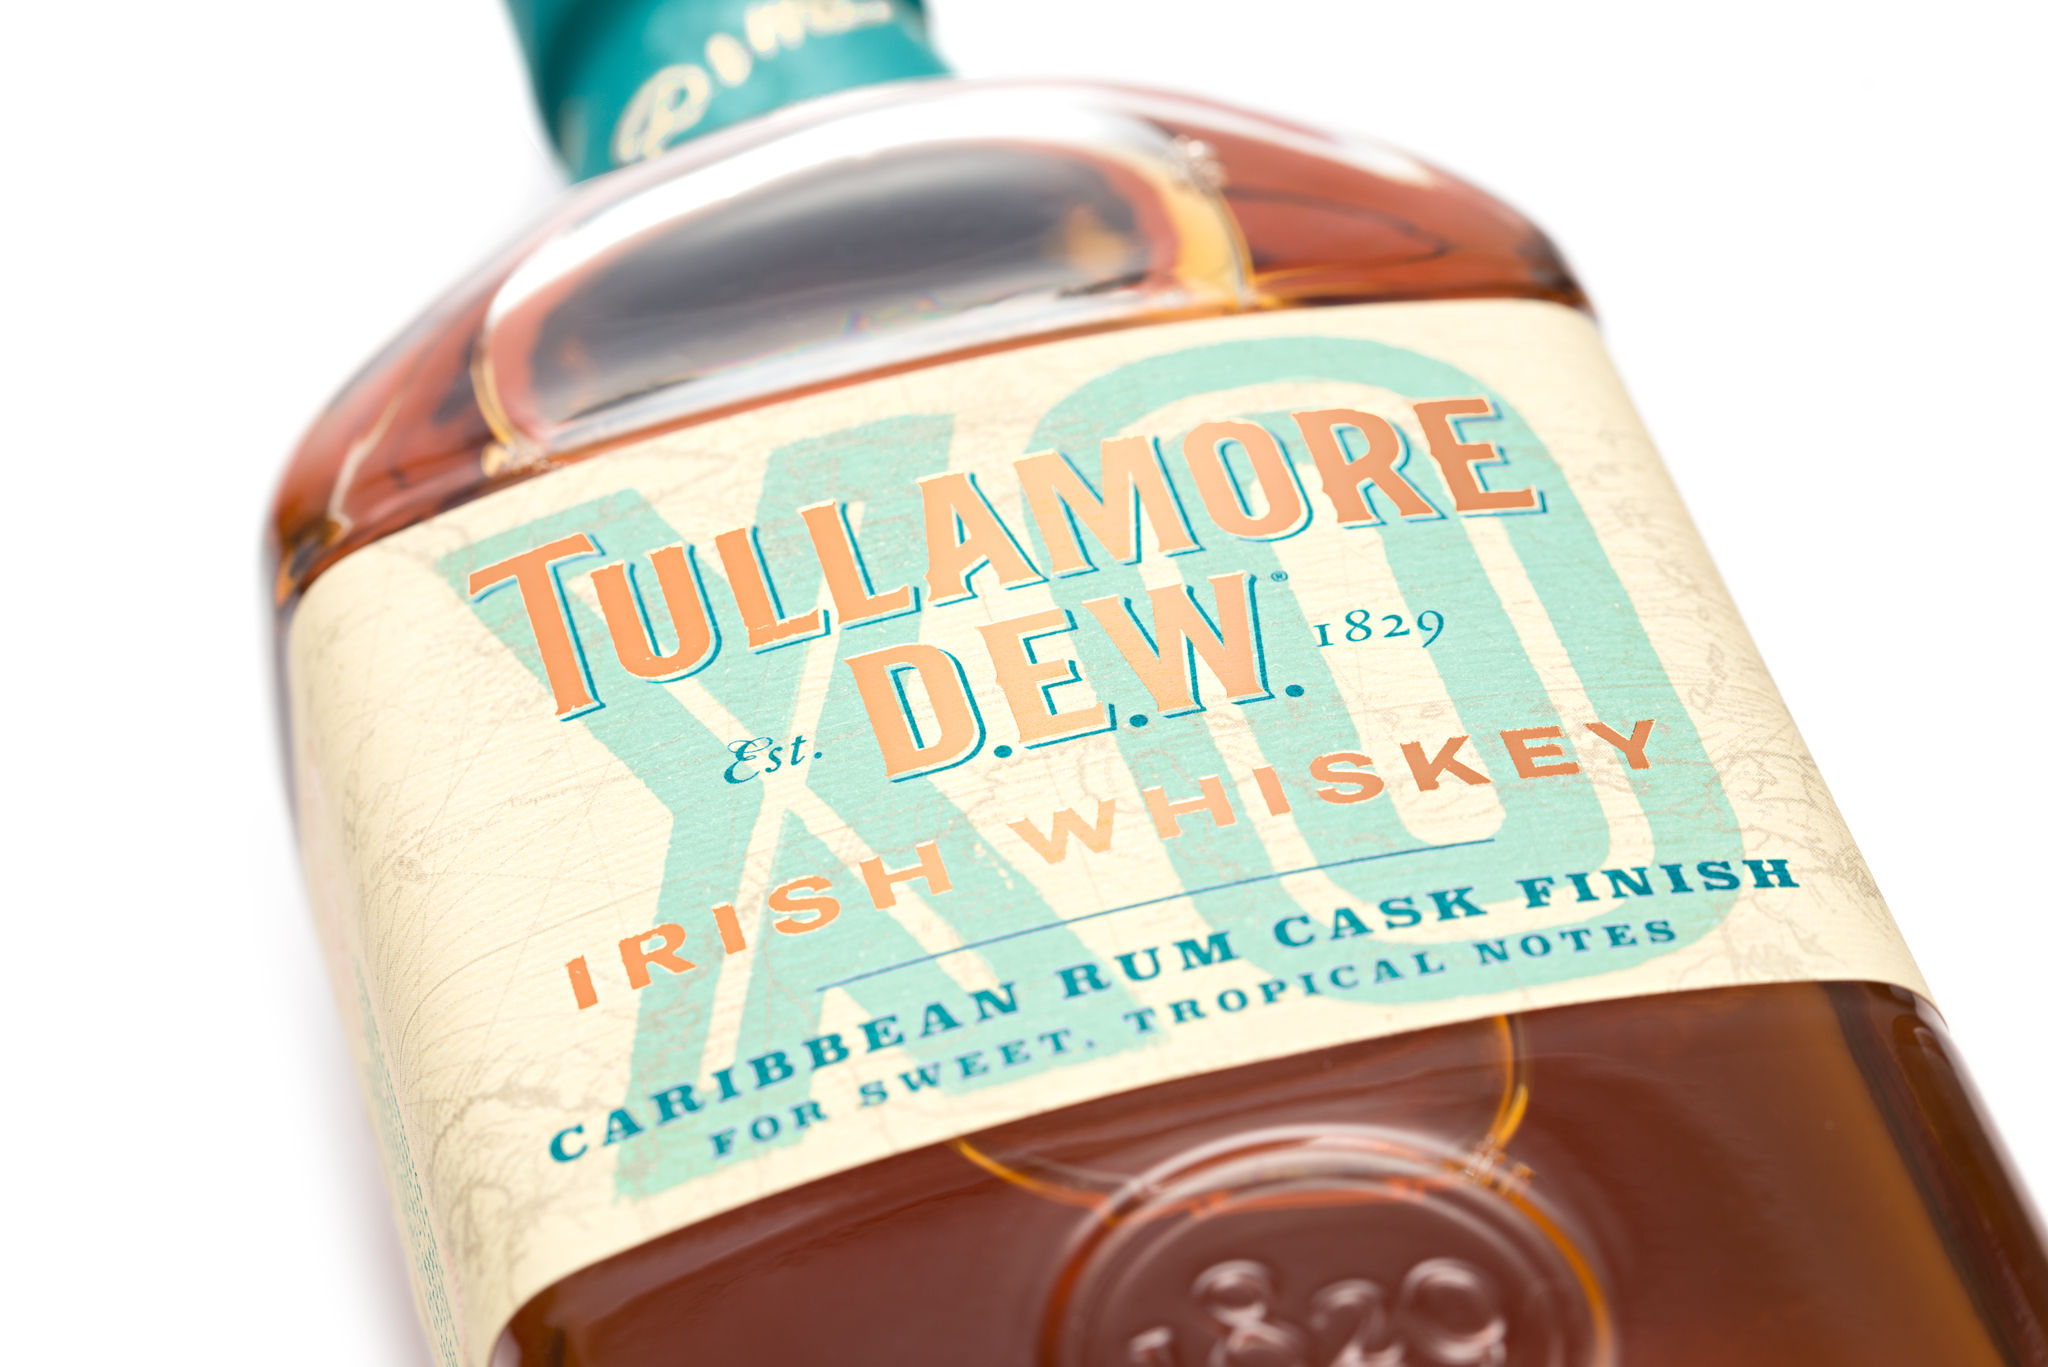 Tullamore D.E.W. Irish Whiskey Brings The Beauty Of Blend To Vibrant Life With XO Caribbean Rum Cask Finish photo